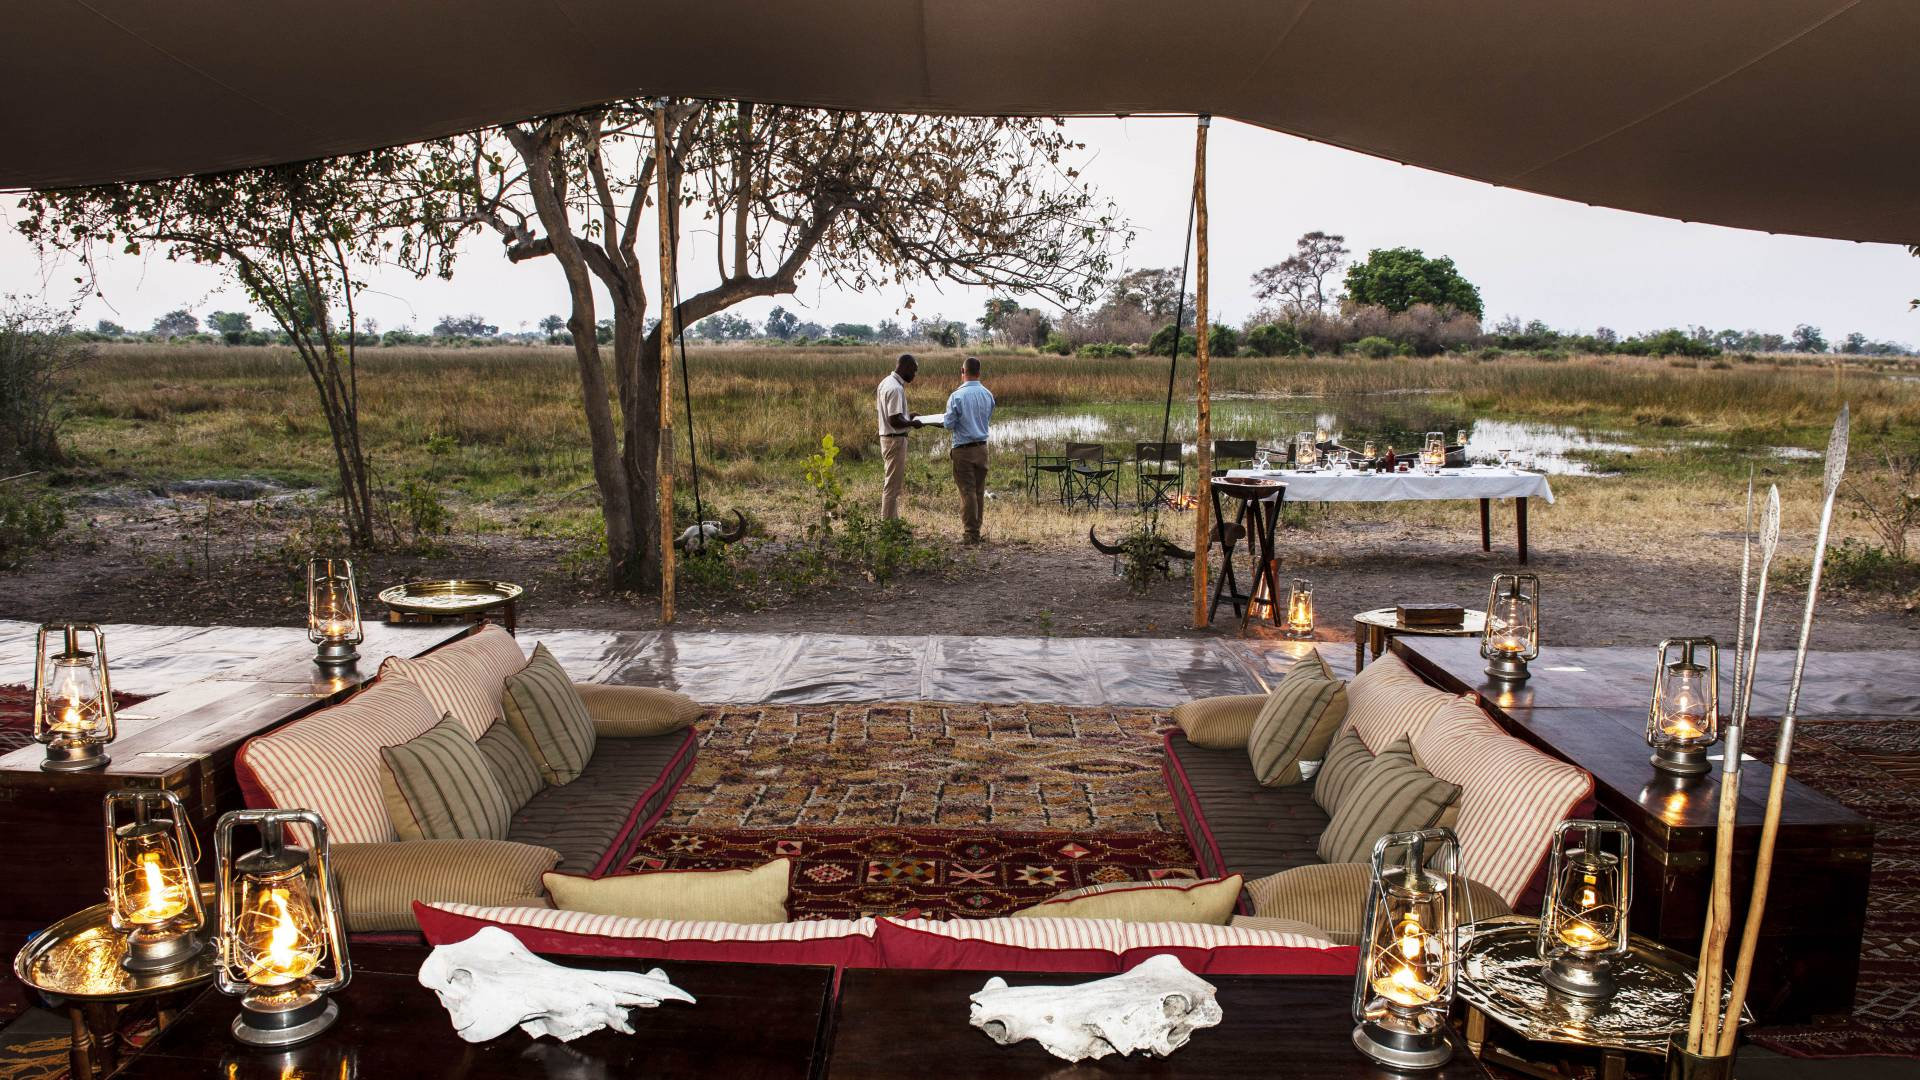 Mobile Safari Botswana ...bar fuss luxus